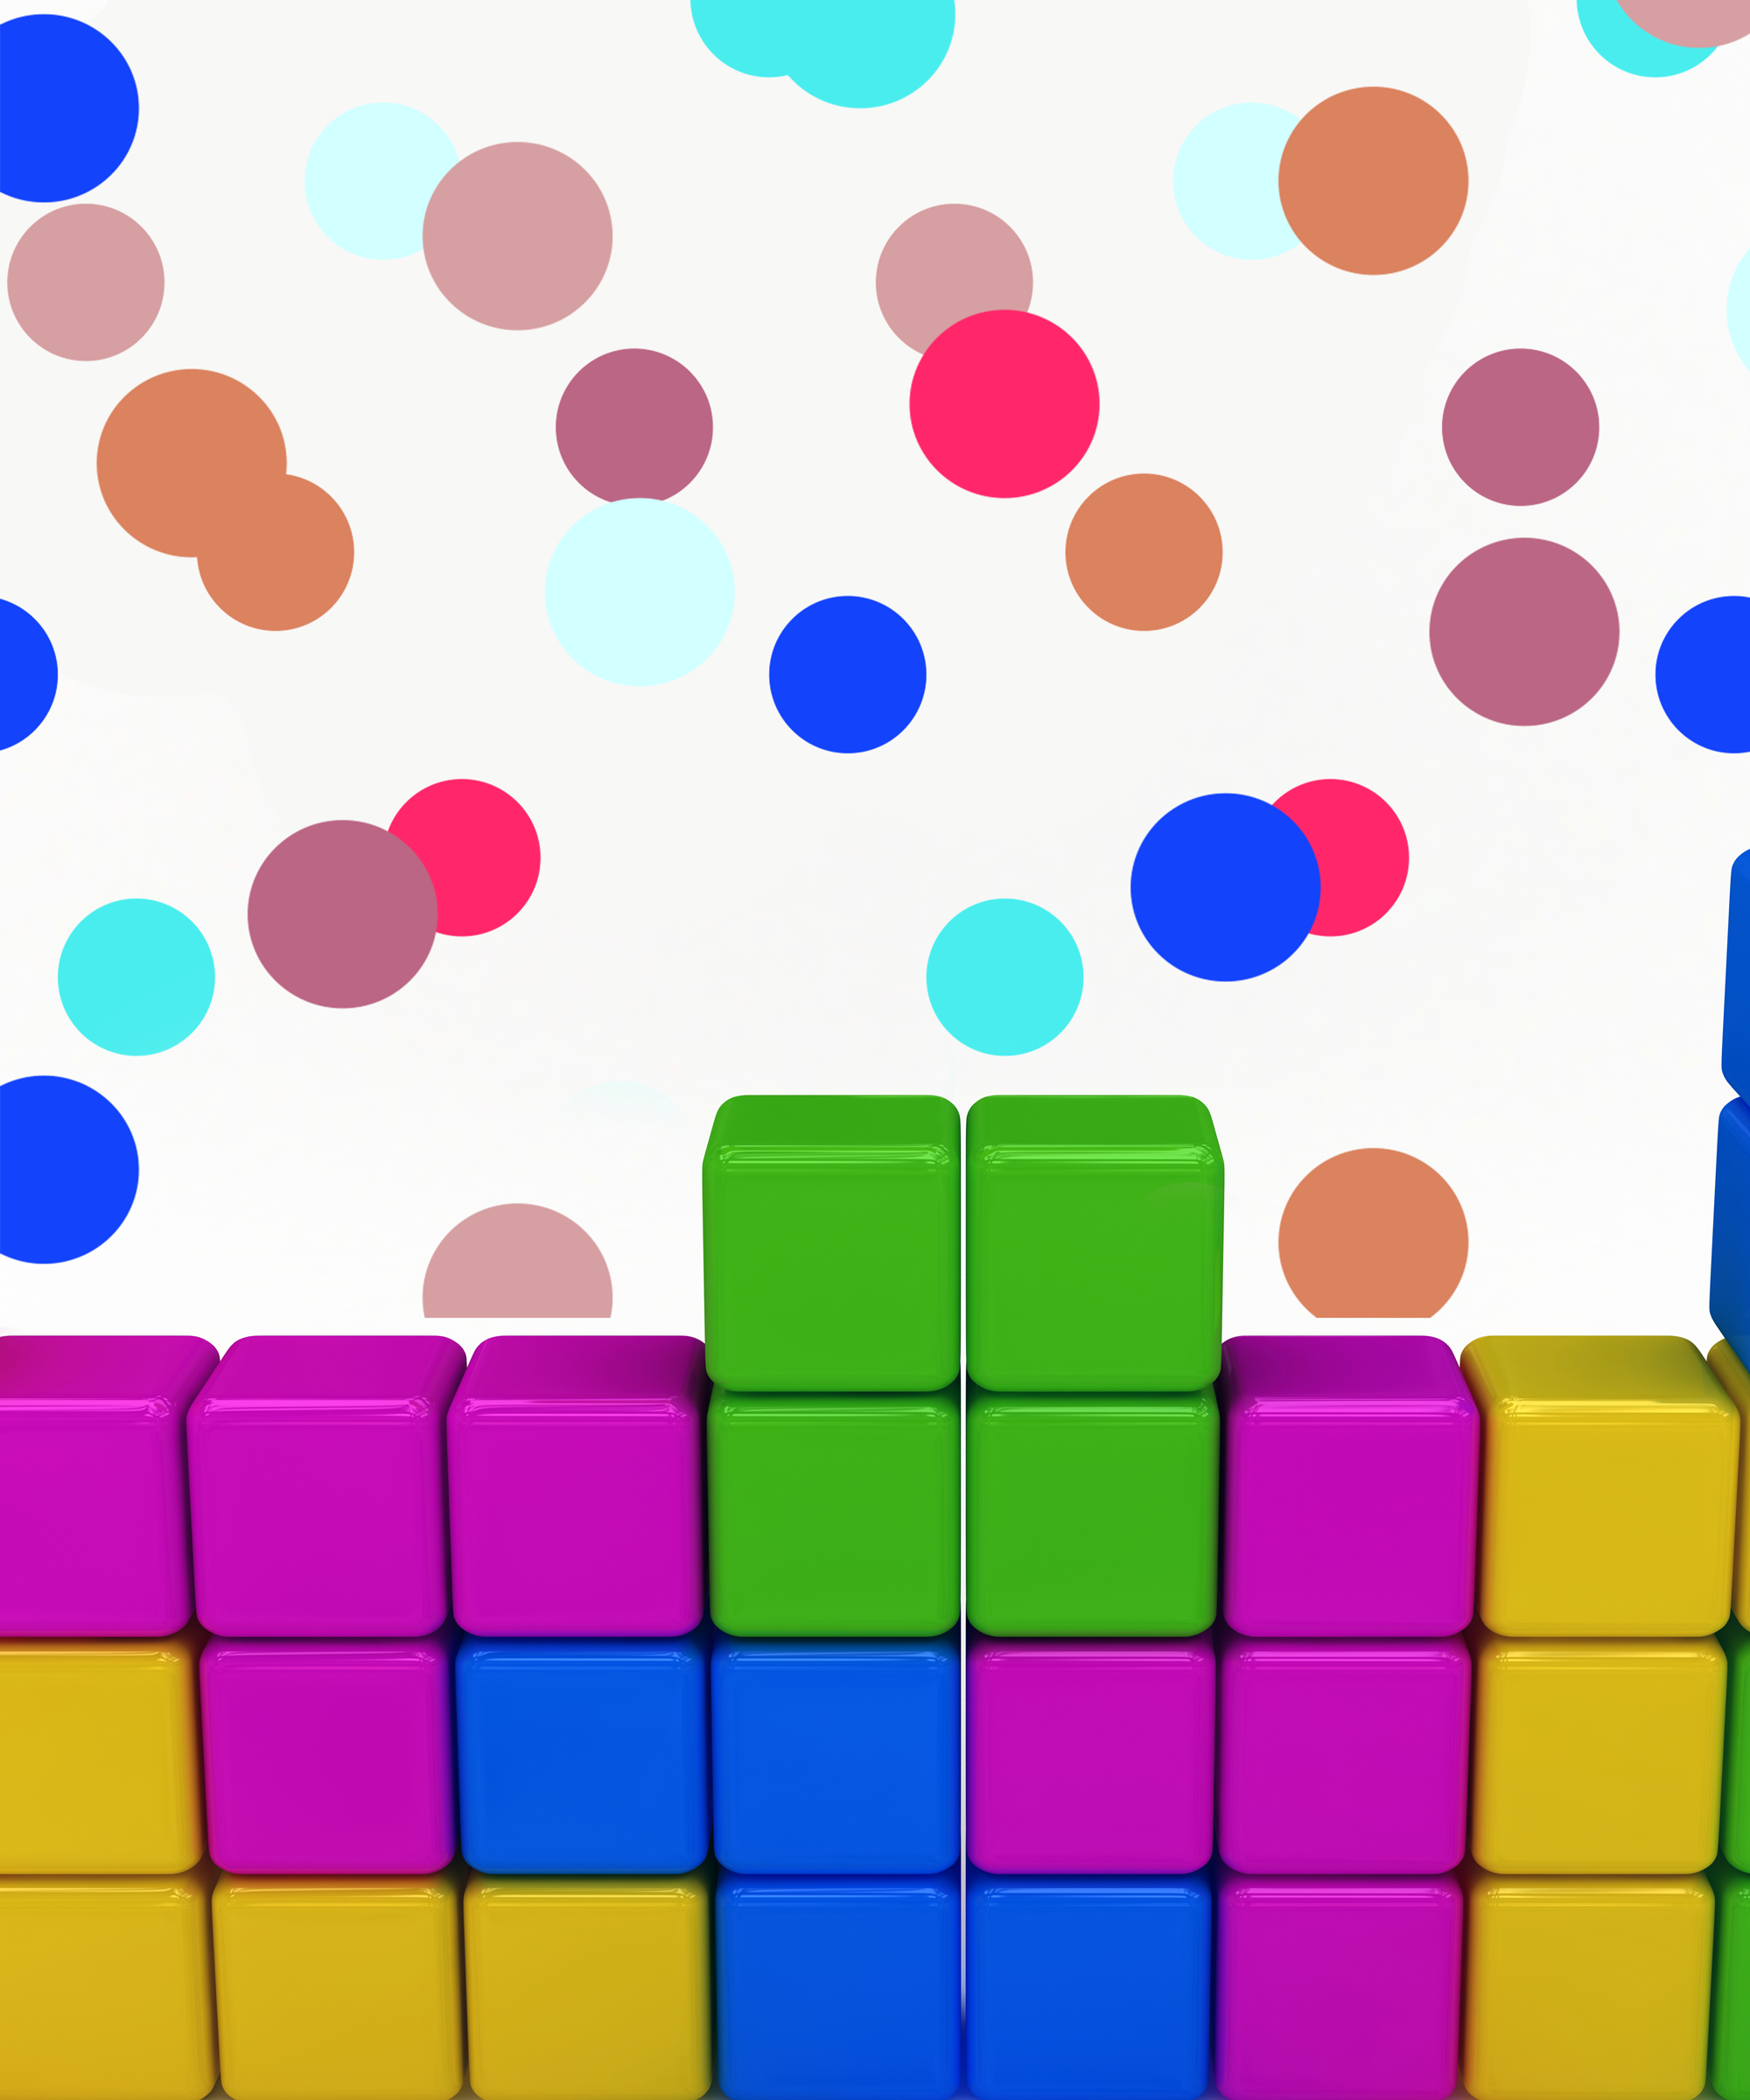 Playing Tetris can help treat PTSD symptoms: Swedish-British study